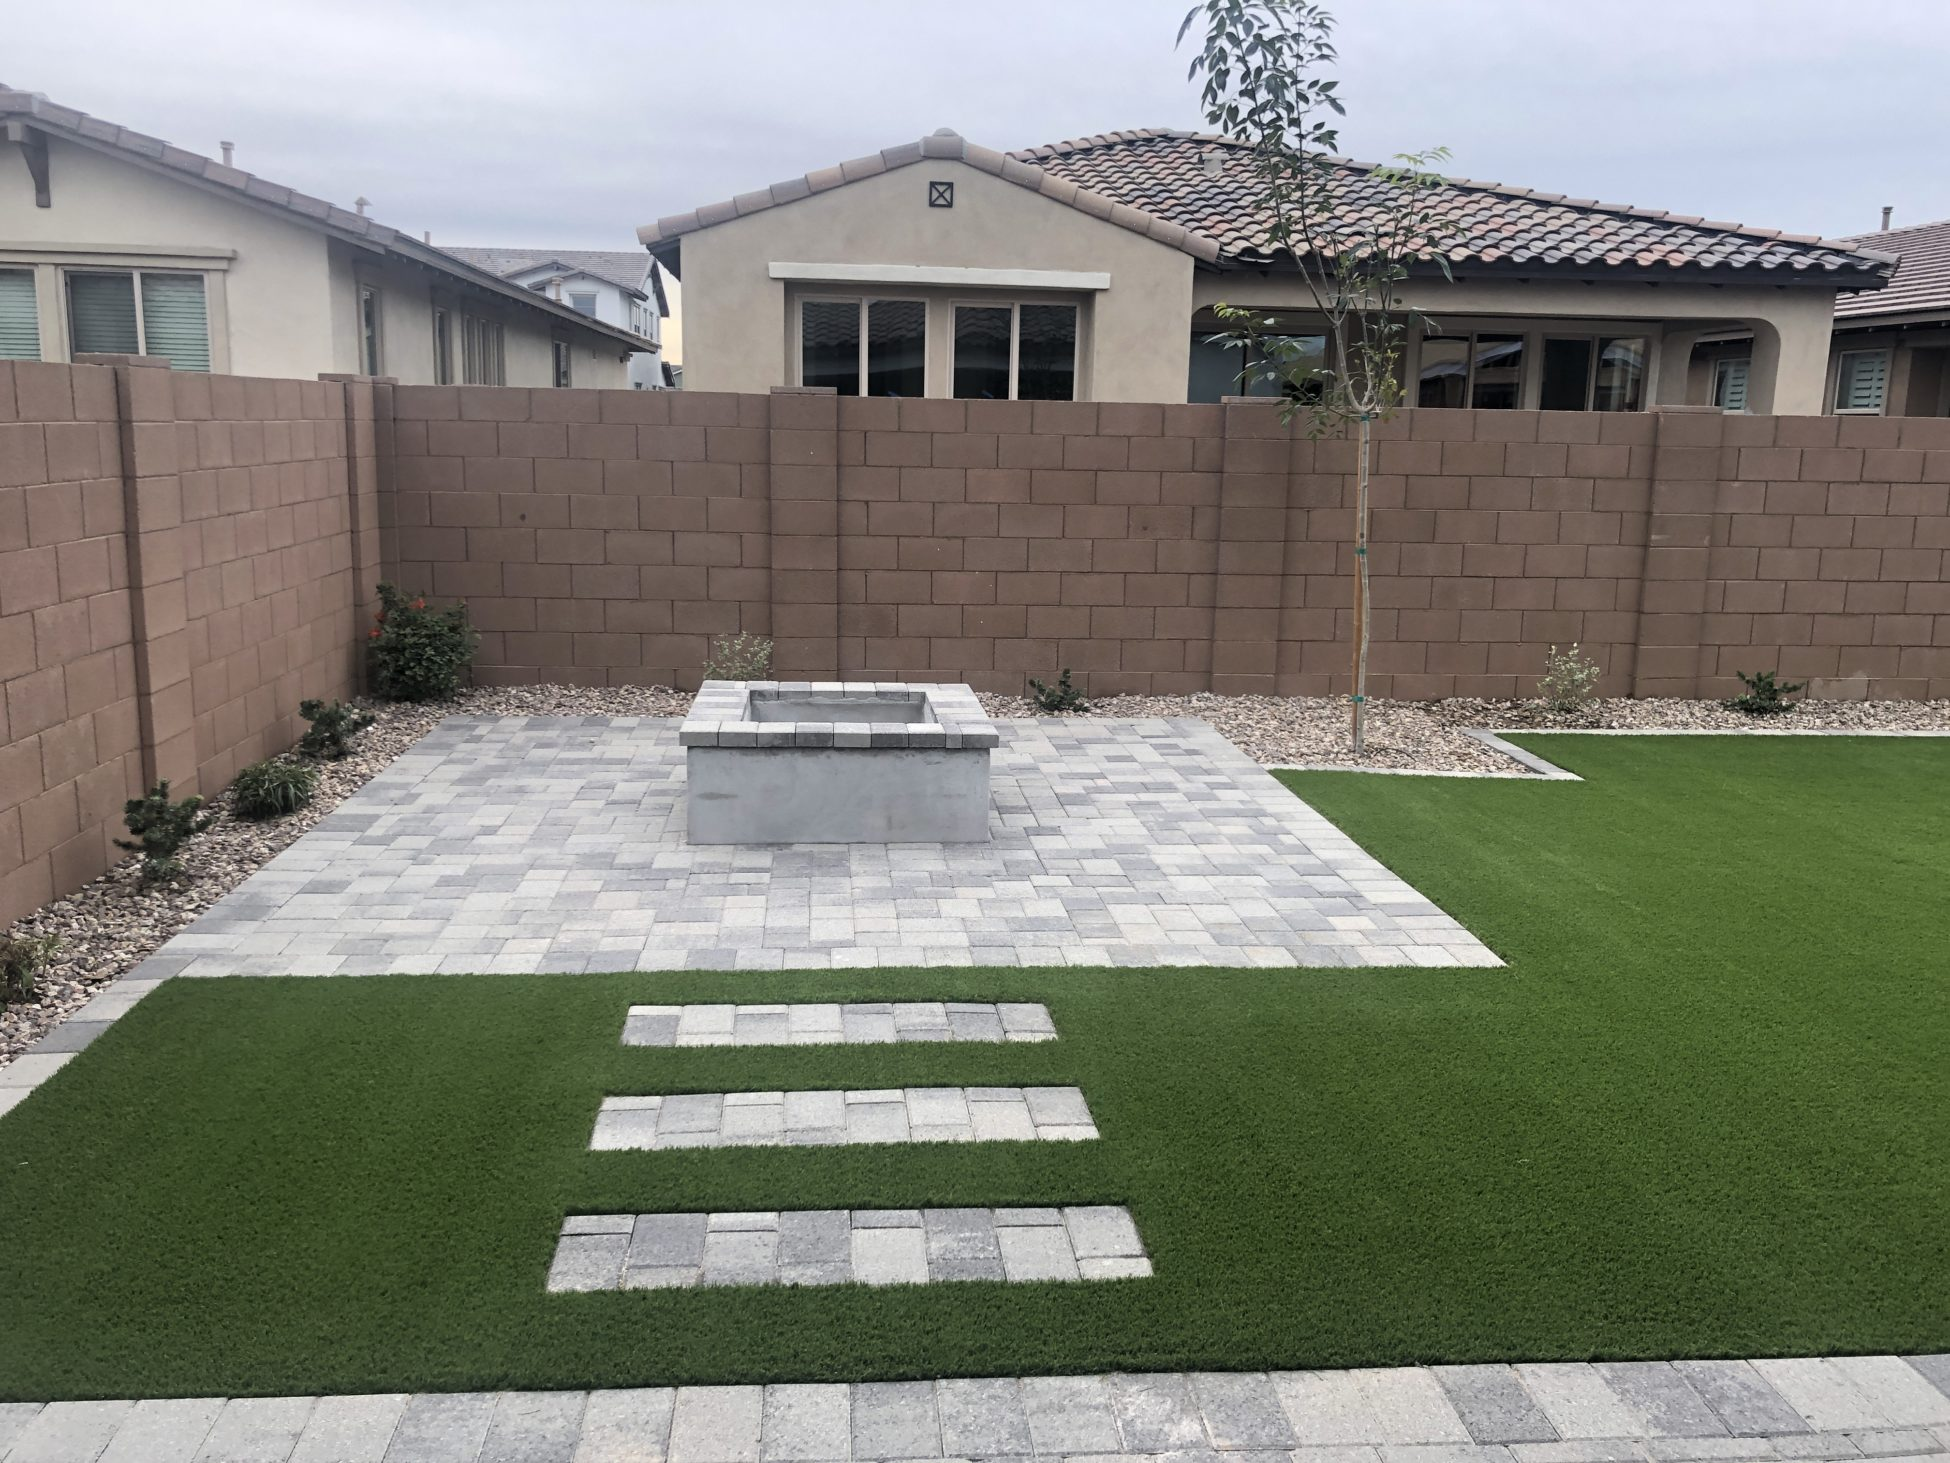 Check It Out! Outdoor Putting Green In Arizona Backyard ... on Backyard Patio With Firepit id=98369